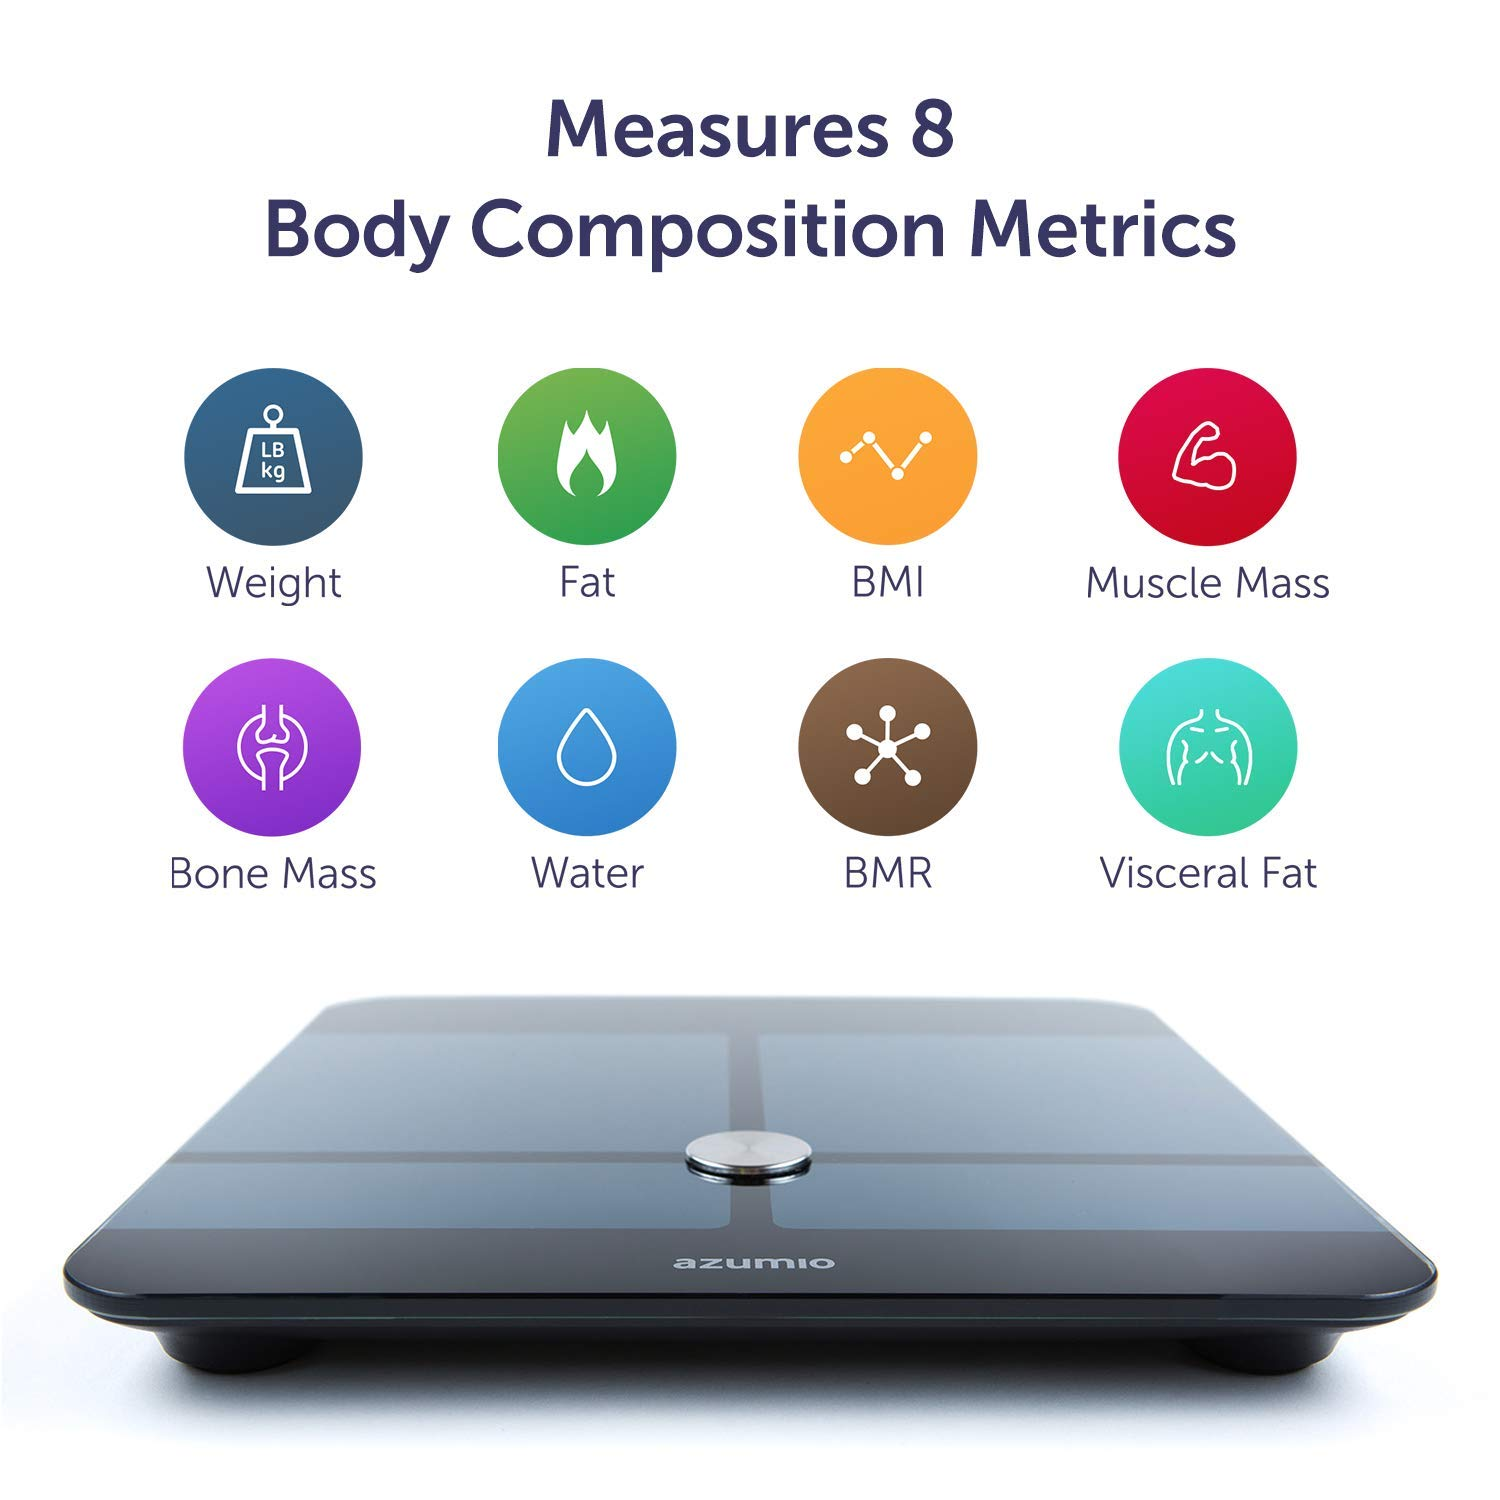 Azumio Bluetooth Digital Smart Scale for Body Weight | 6mm Tempered Glass LED Display Measures Body Fat, Visceral, BMI, BMR, Muscle Mass, Bone Mass Water Weight in KG or LB | iOS & Android Compatible by Azumio (Image #3)